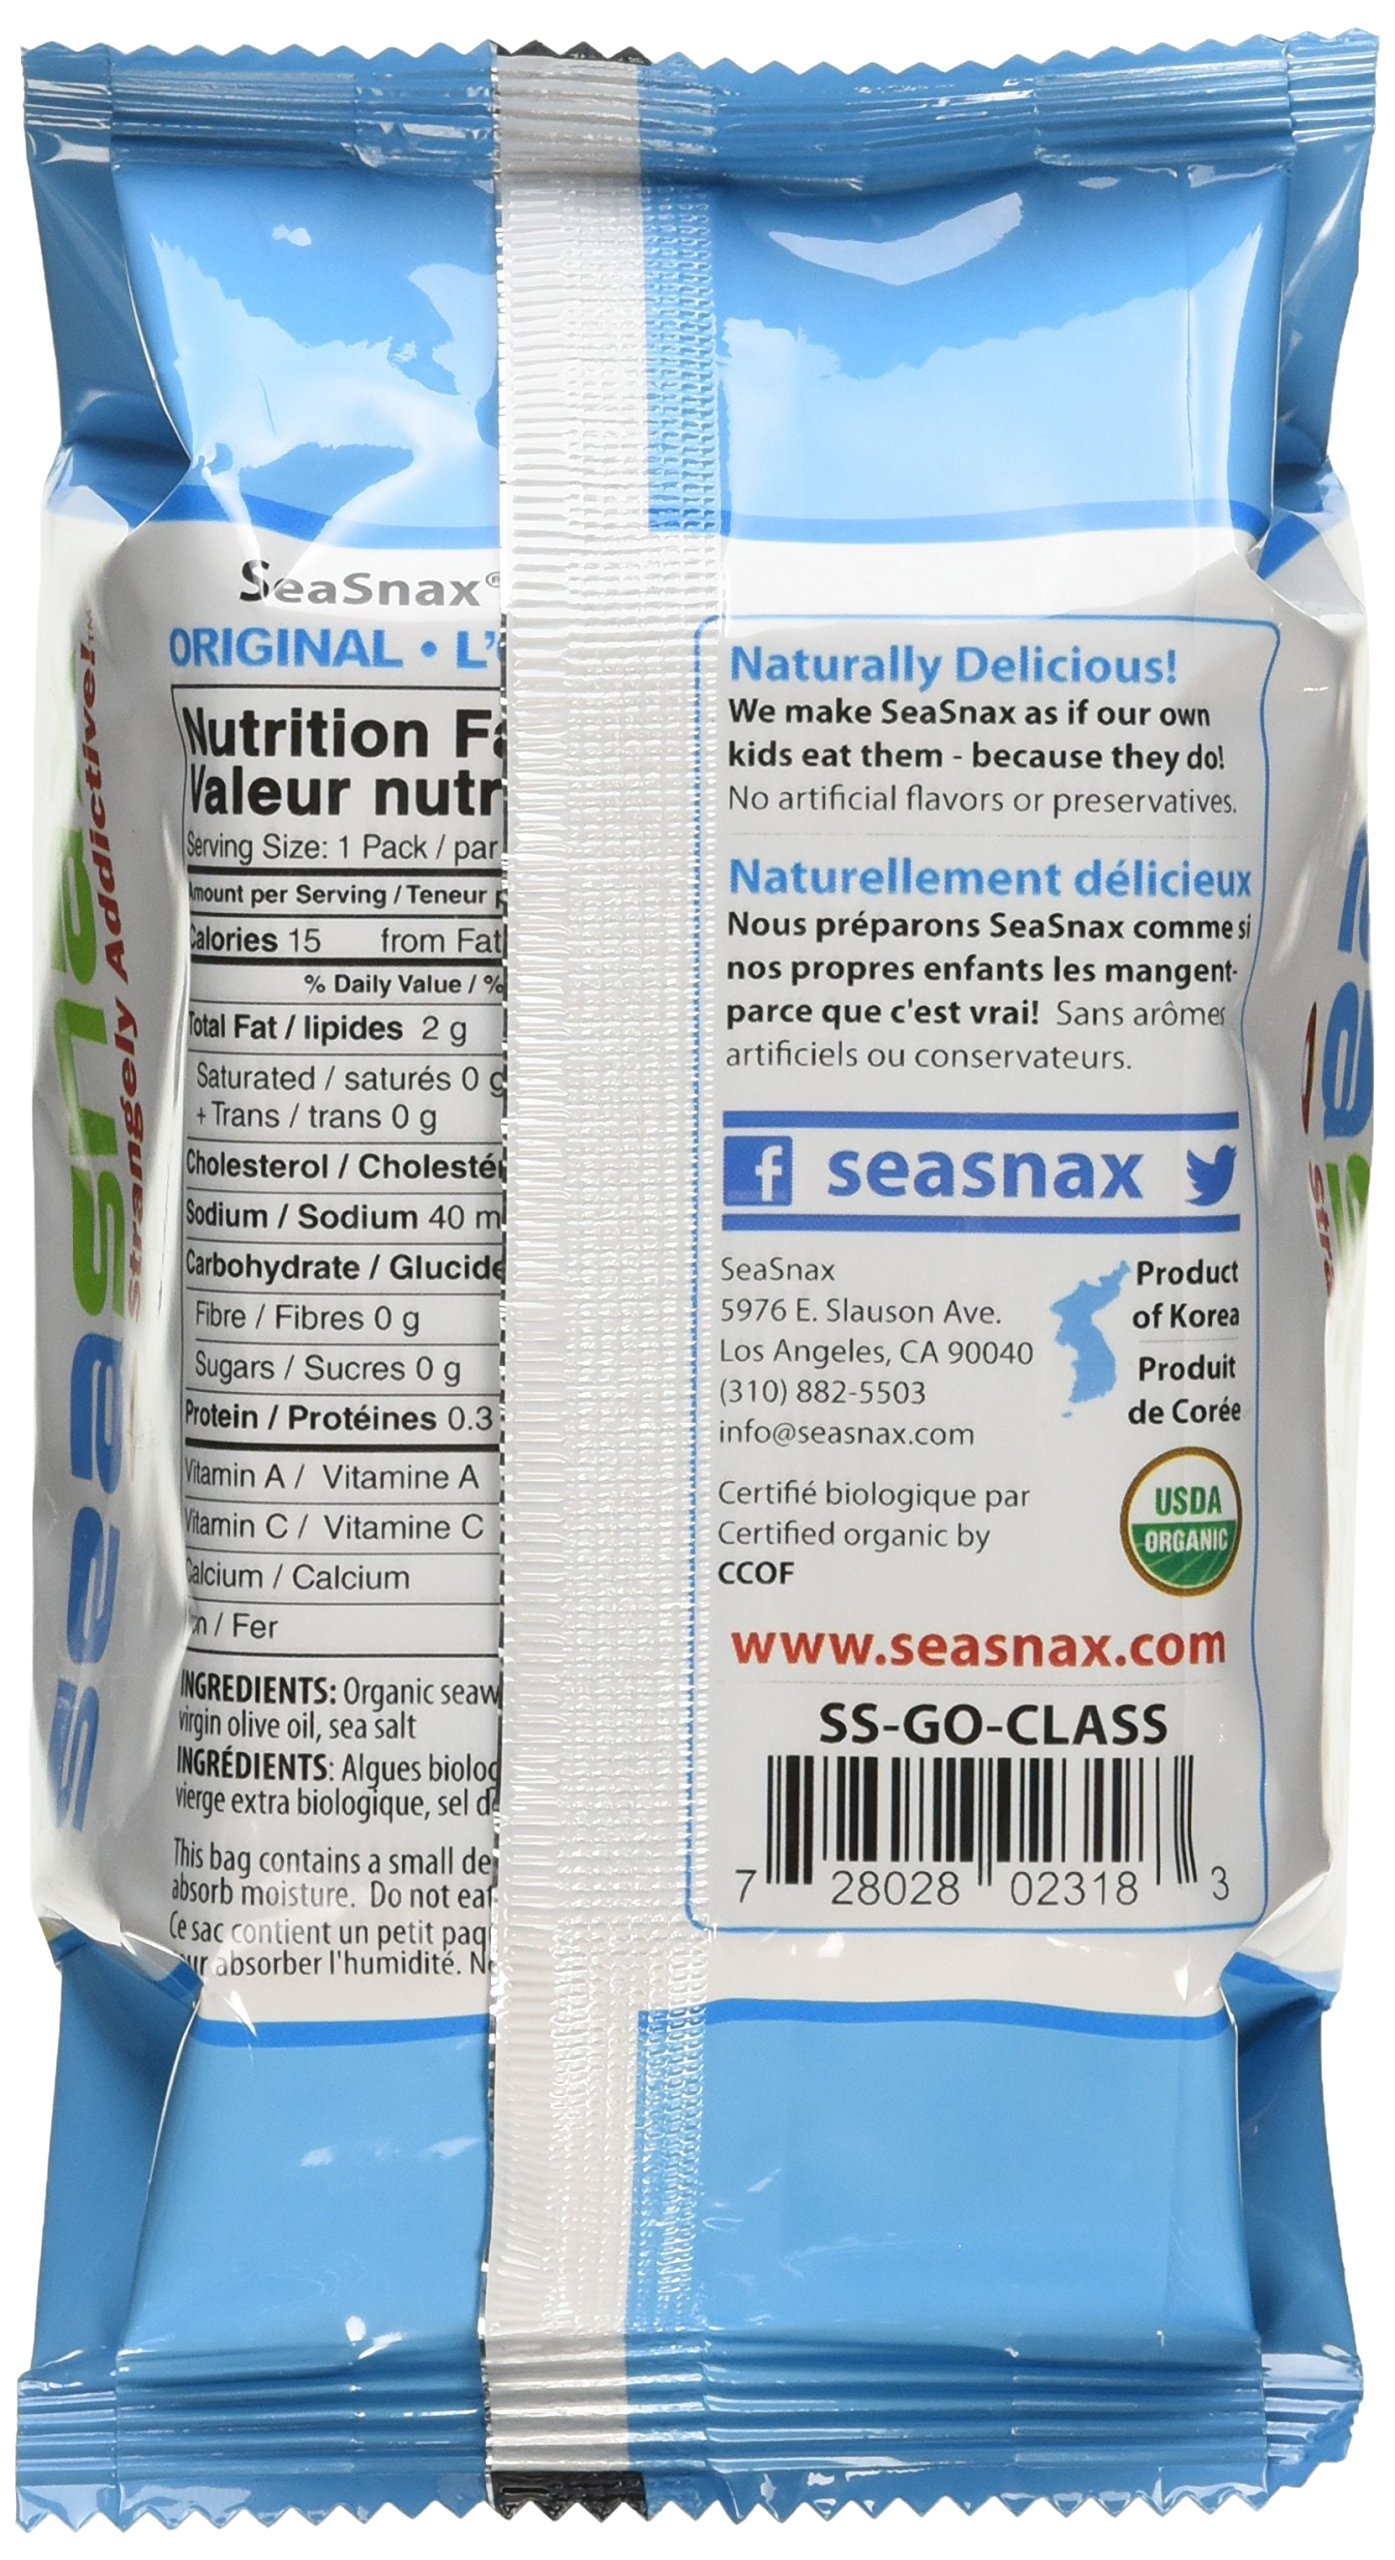 SeaSnax Organic Roasted Seaweed Snack Grab and Go, Original, 0.18 Ounce (Pack of 24) by SeaSnax (Image #5)